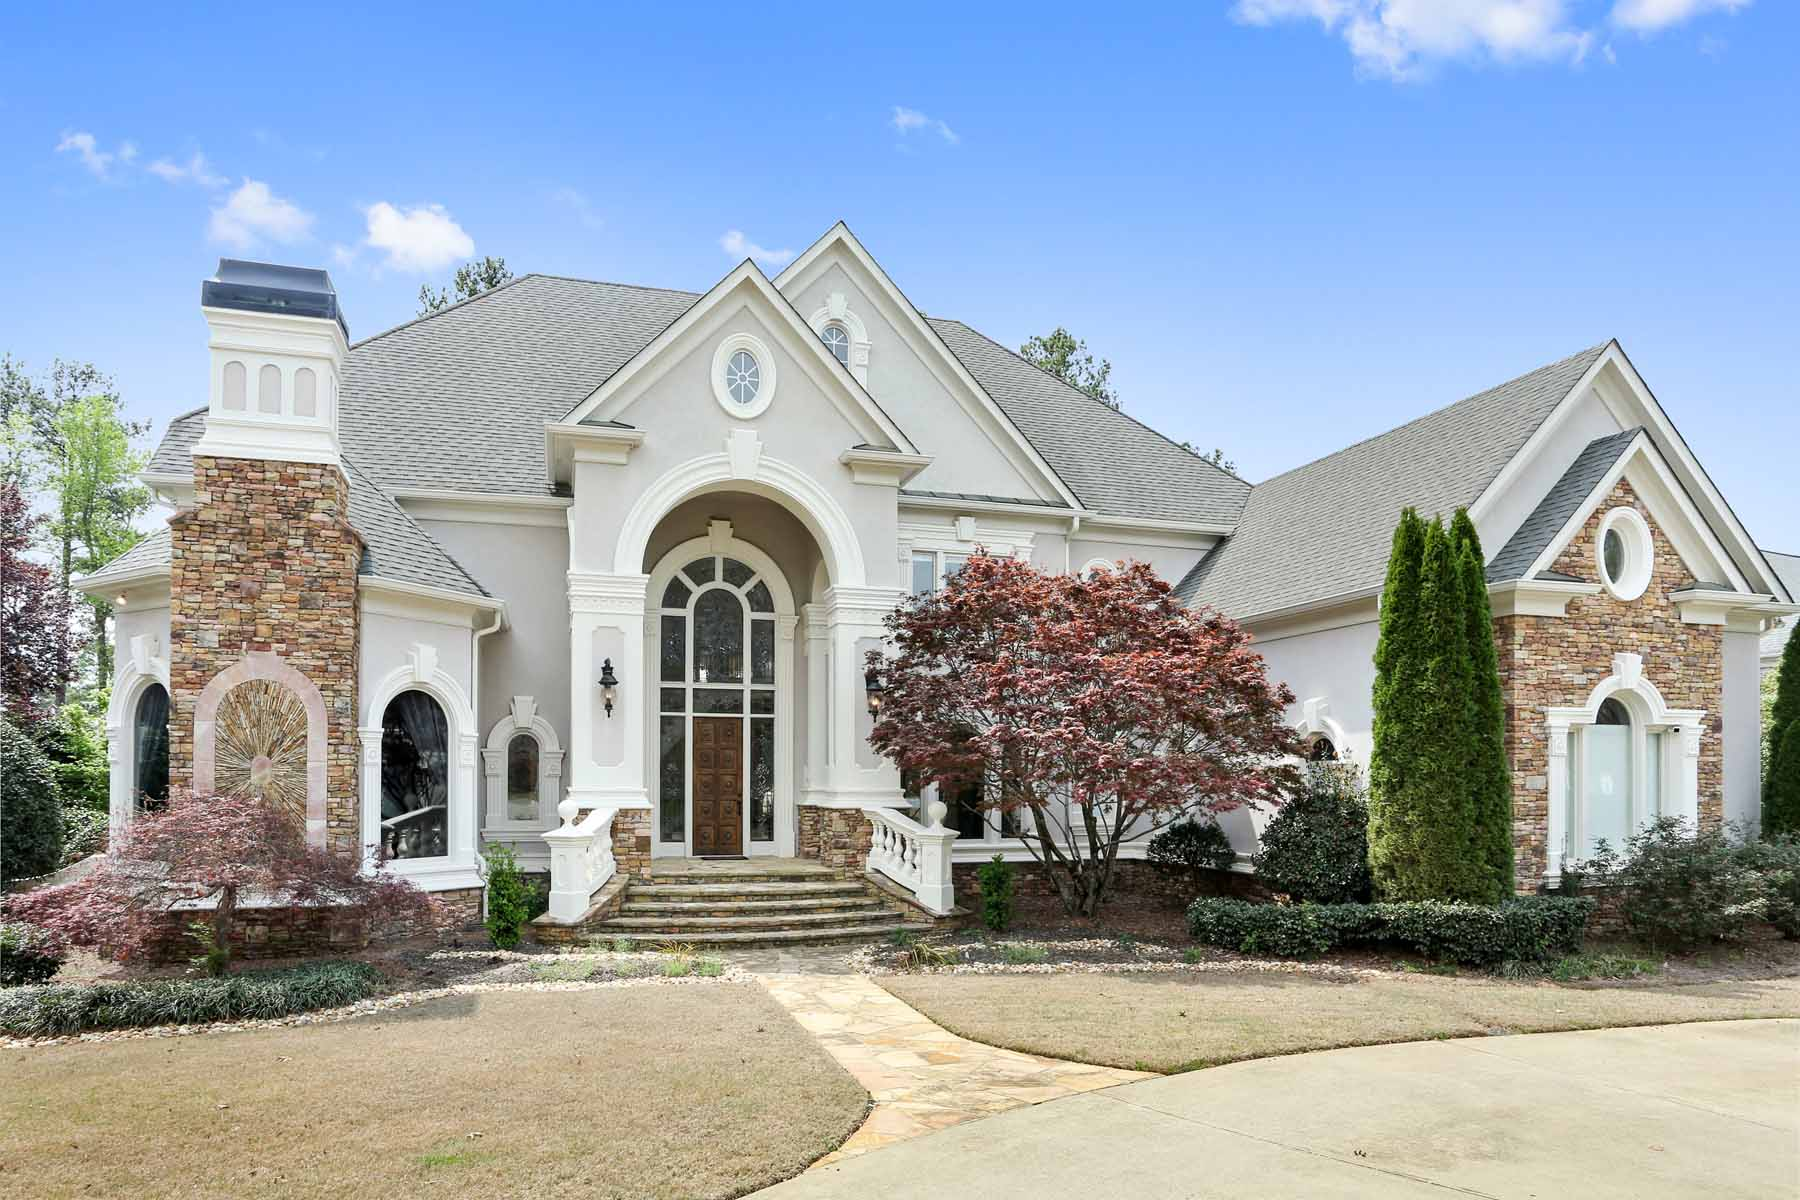 独户住宅 为 销售 在 Immaculate 8 Bed 8 Bath Sugarloaf Country Club Masterpiece 2838 Grey Moss Pass 德鲁斯, 乔治亚州, 30097 美国